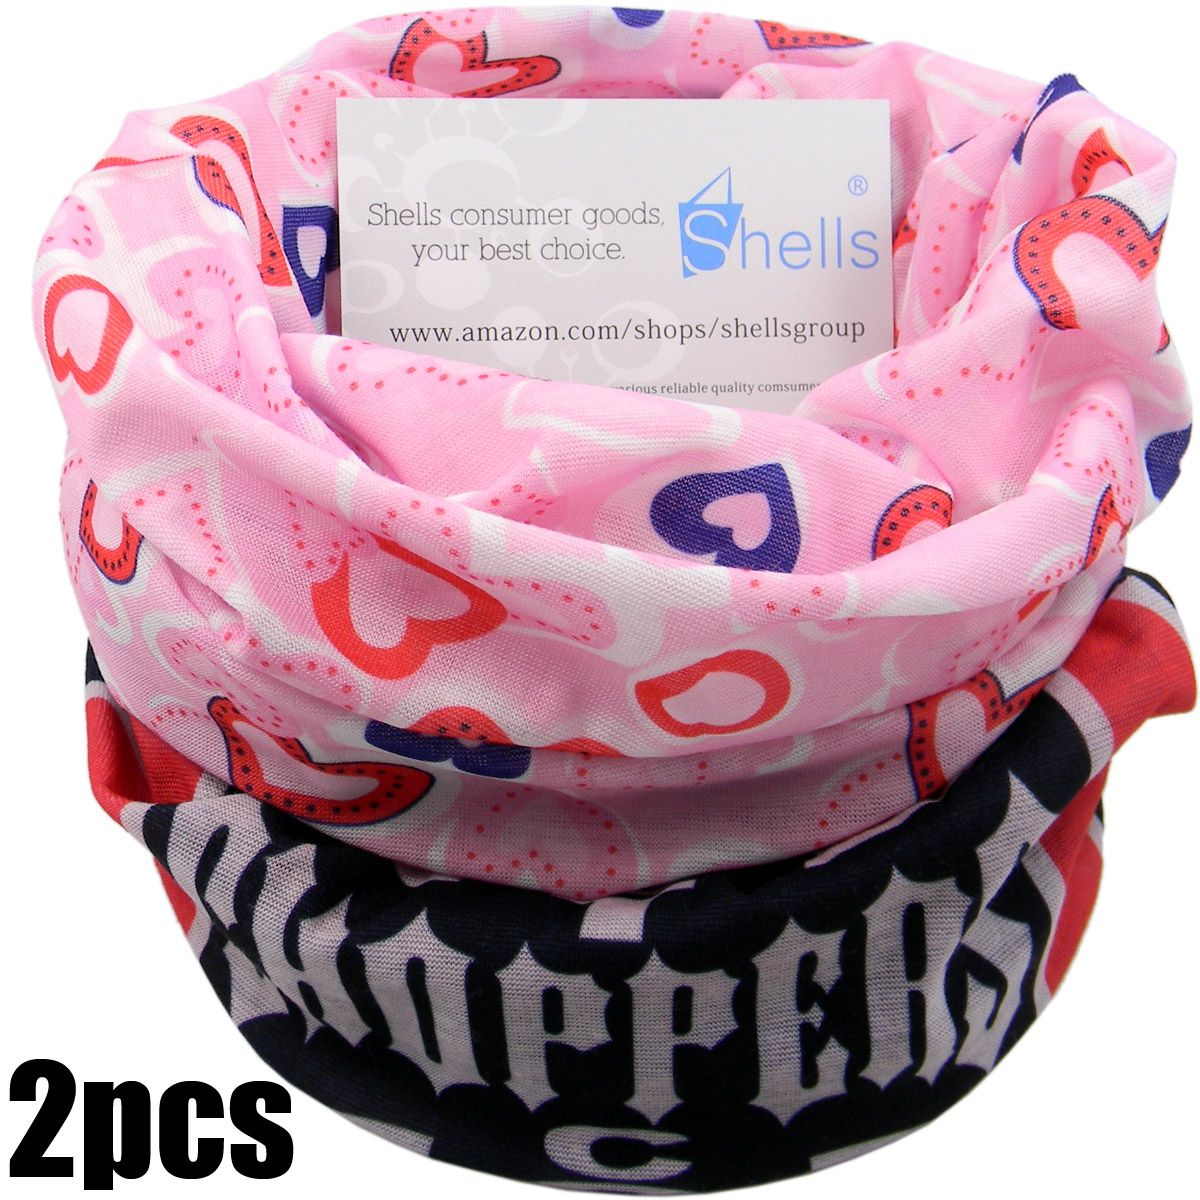 Blask Choppers Pattern Pink Lover Pattern Polyester Microfiber Outdoor Sport Magic Multifunction No Seam Headscarf Headwear Face Mask Neck Warmer For Motorcycle Bike Ski Outdoor activities